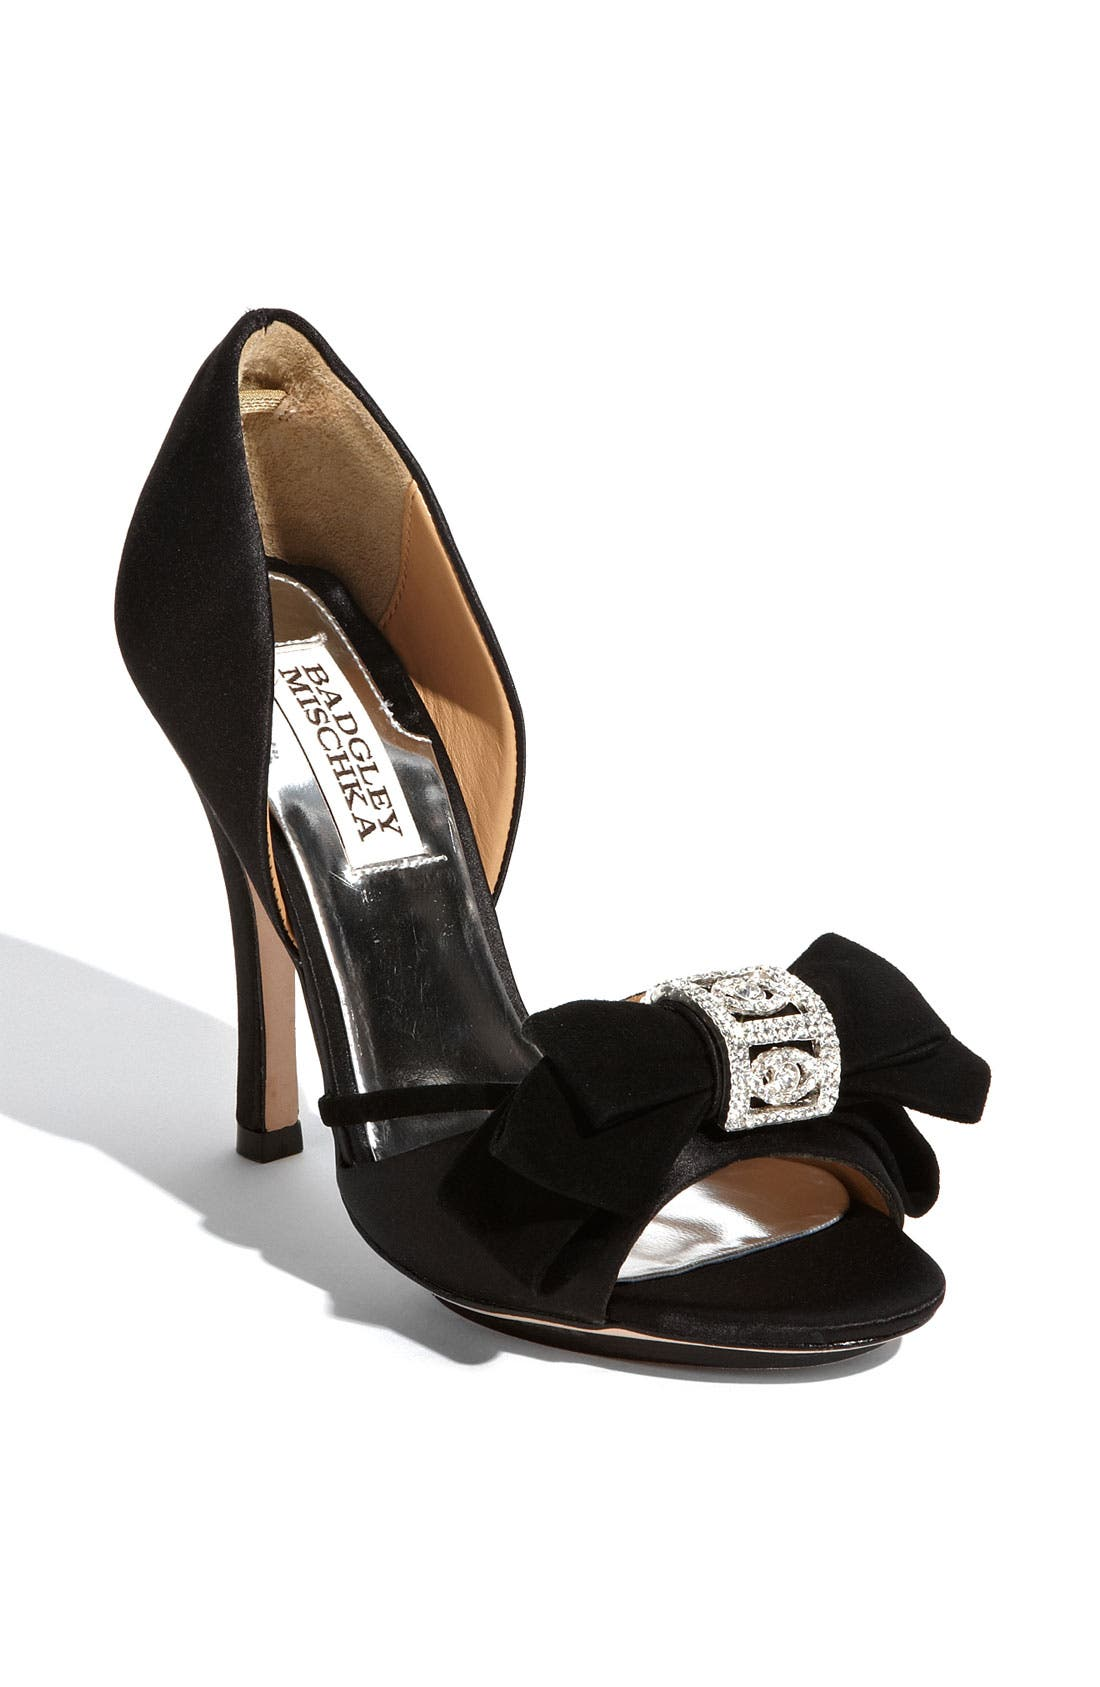 Alternate Image 1 Selected - Badgley Mischka 'Babette' Sandal